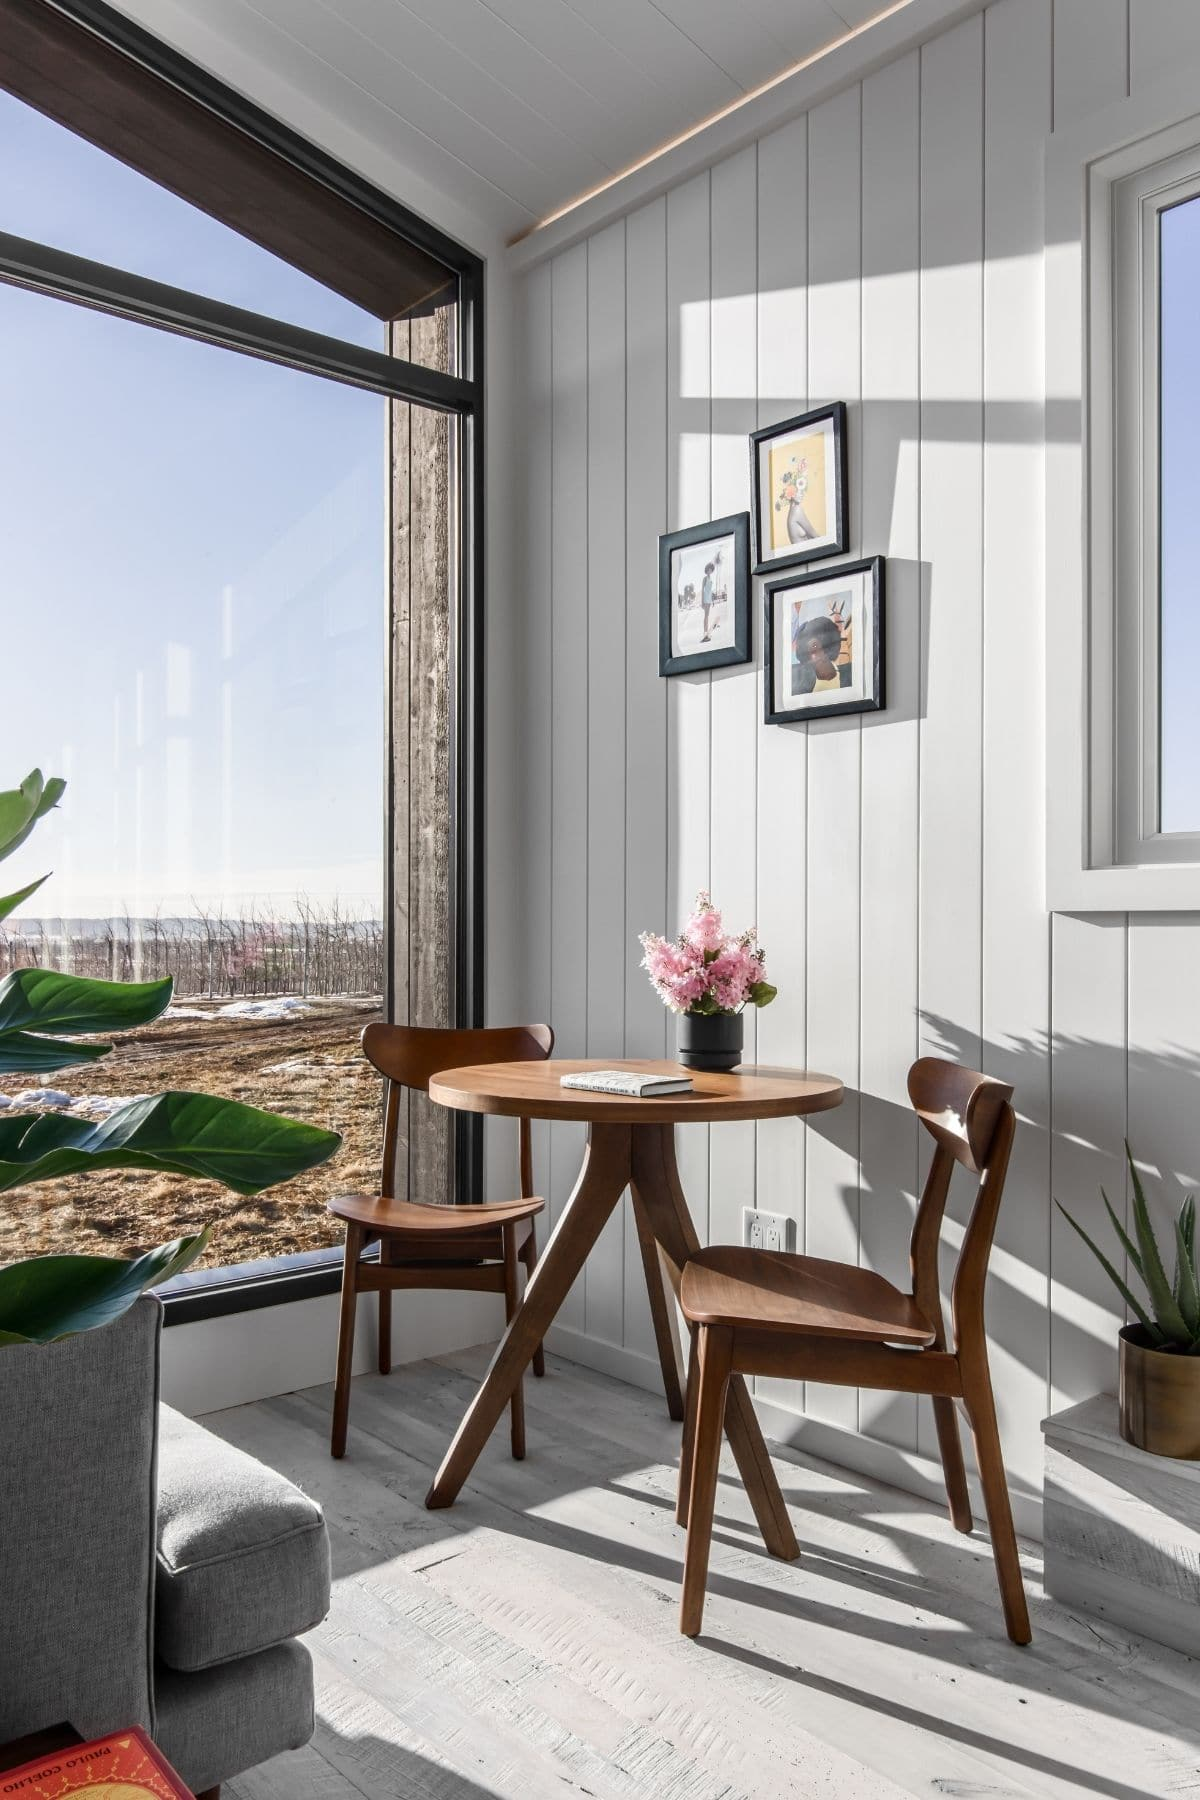 Two wooden chairs next to wood table by open window